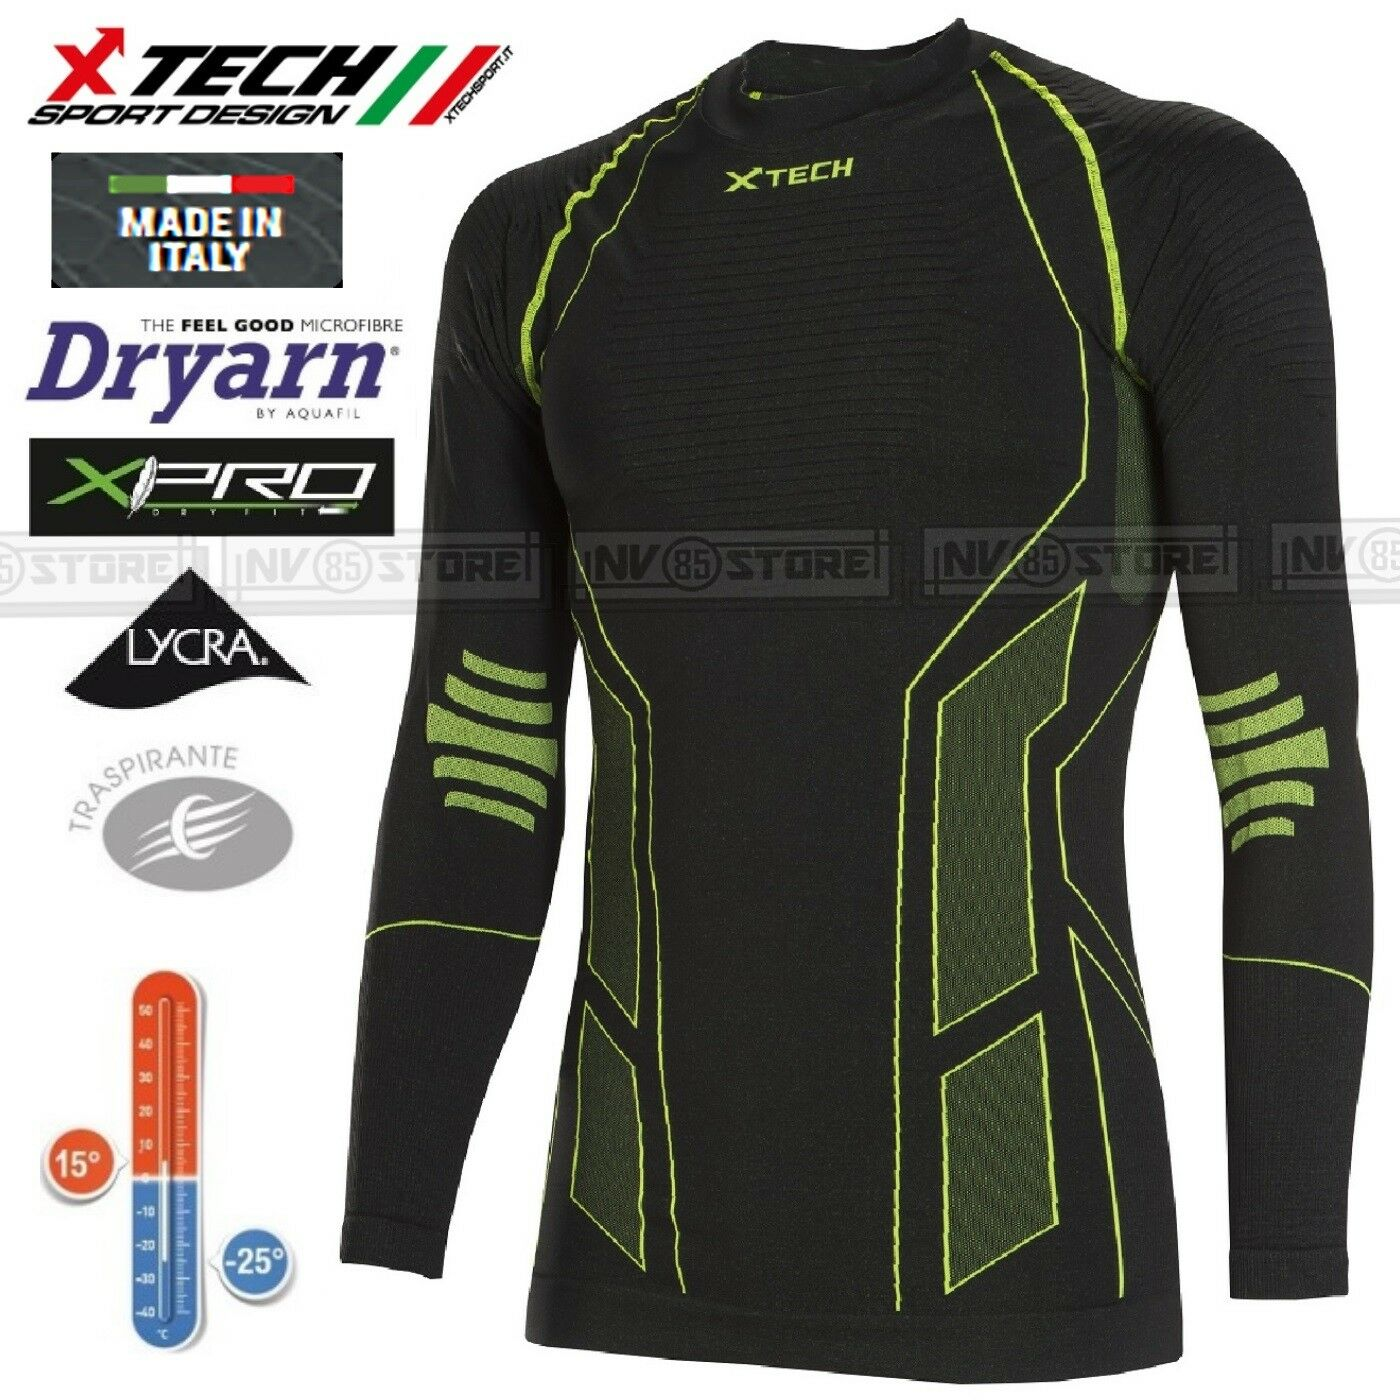 Maglia XTECH Tecnica Termica X-TECH TITANIUM -25° Thermal Shirt Made in  BK